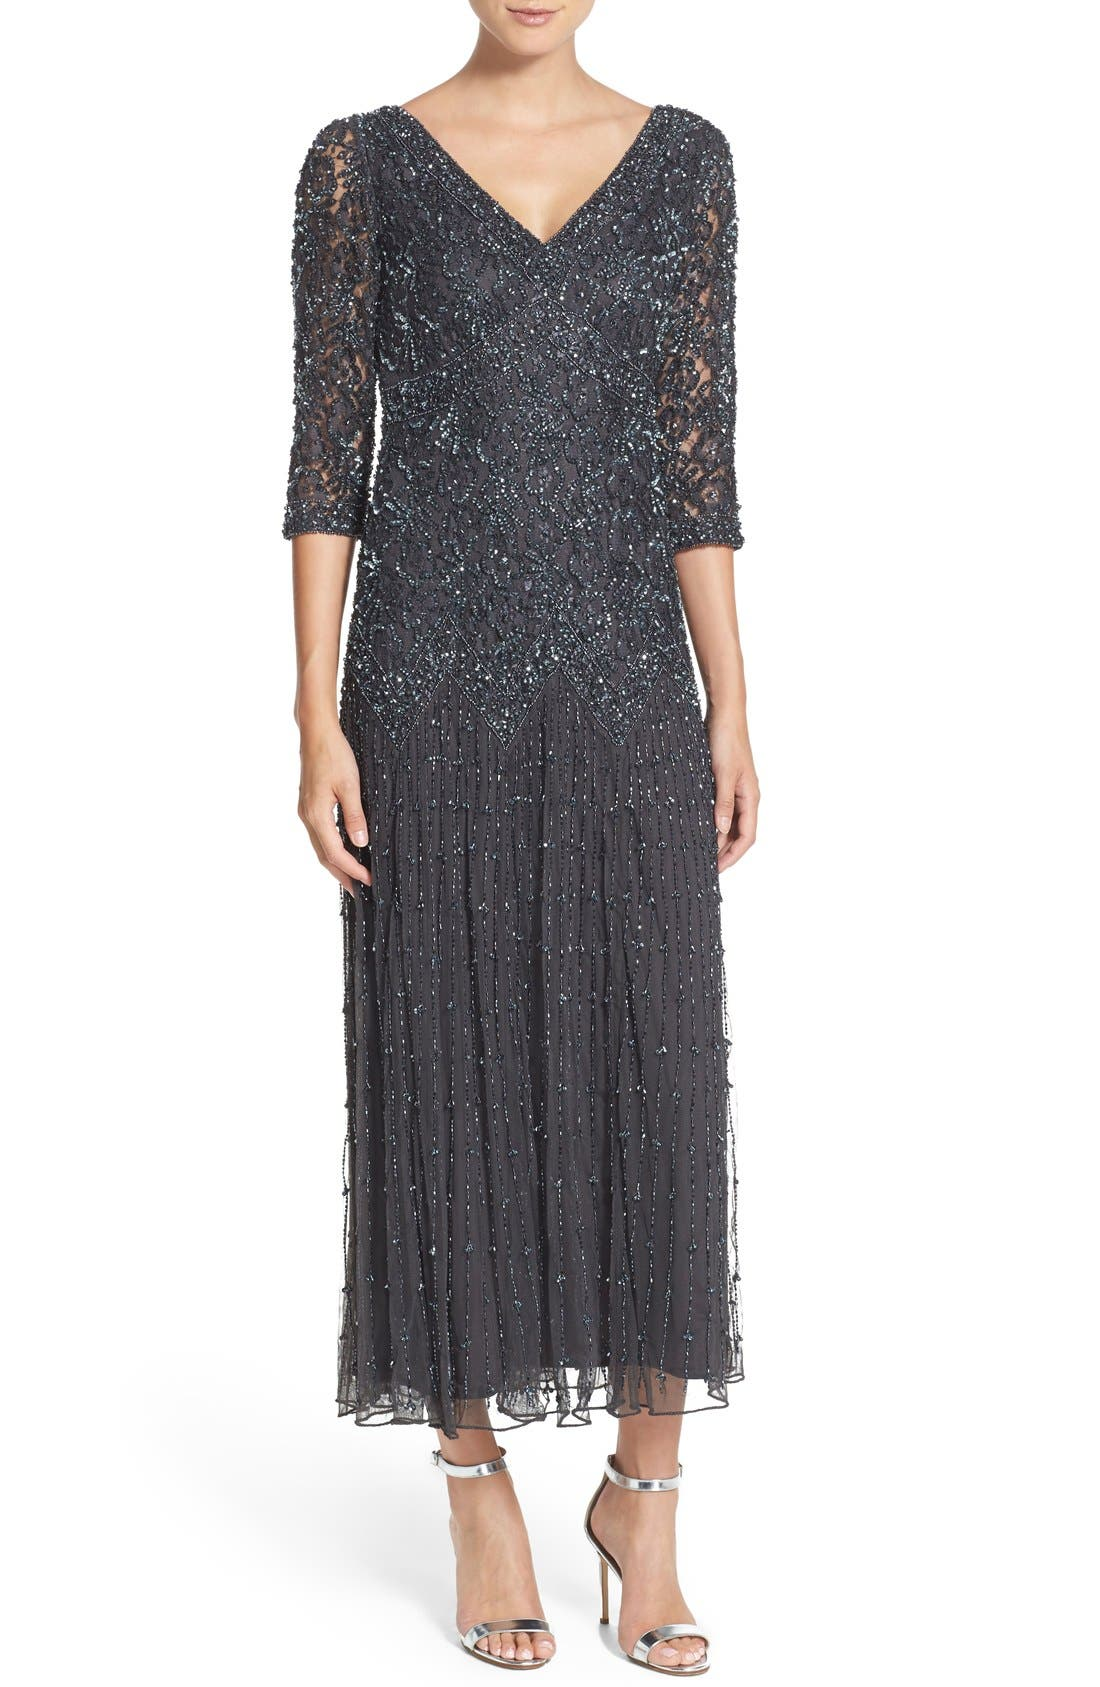 Alternate Image 1 Selected - Pisarro Nights Beaded Mesh Dress (Regular & Petite)